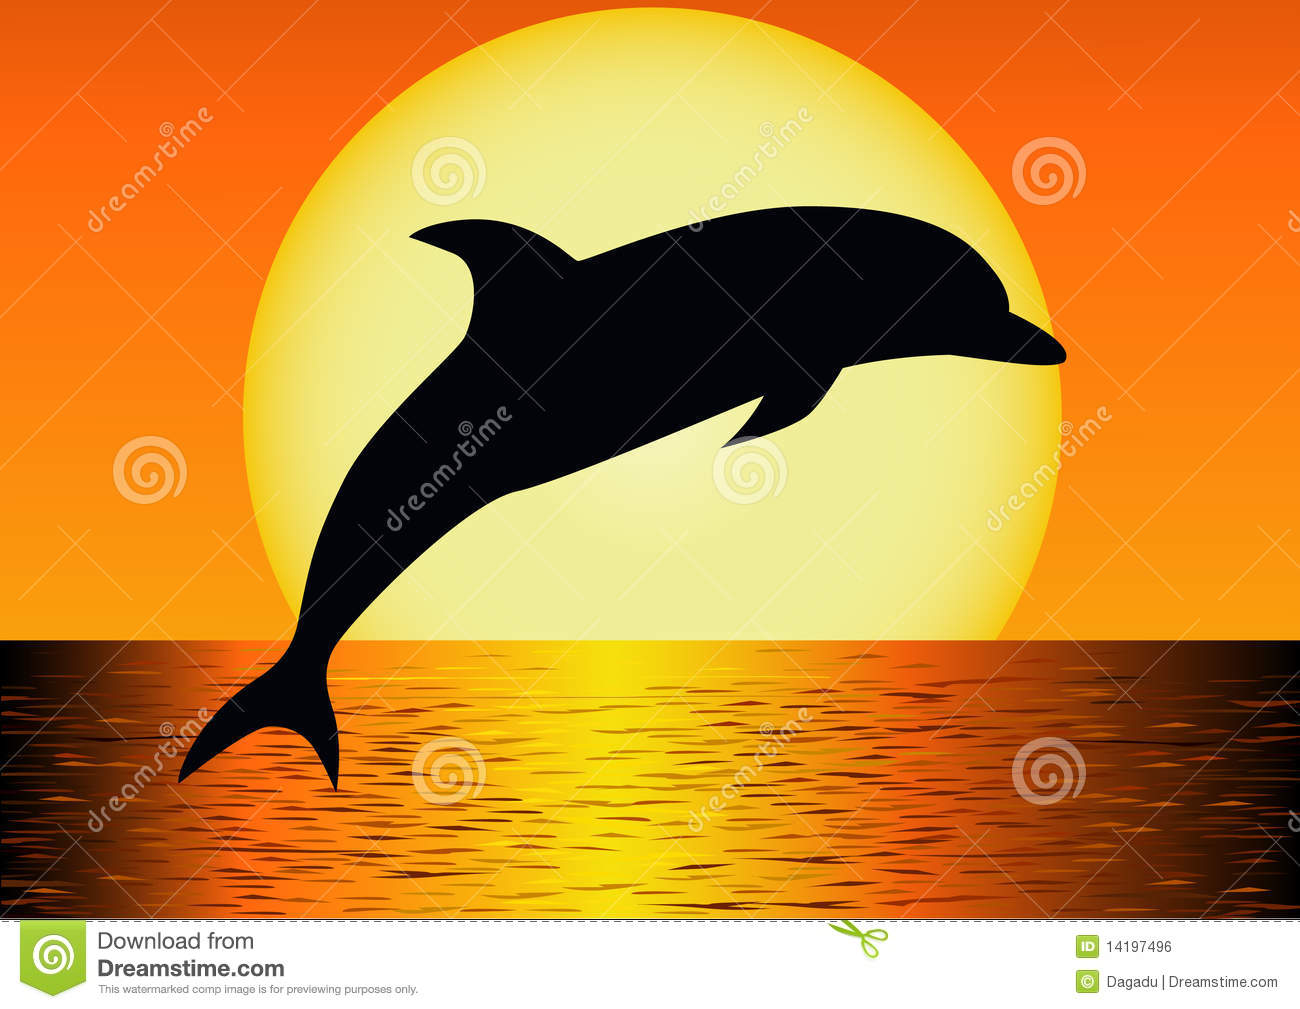 Royalty Free Stock Image Dolphin Silhouette 14197496